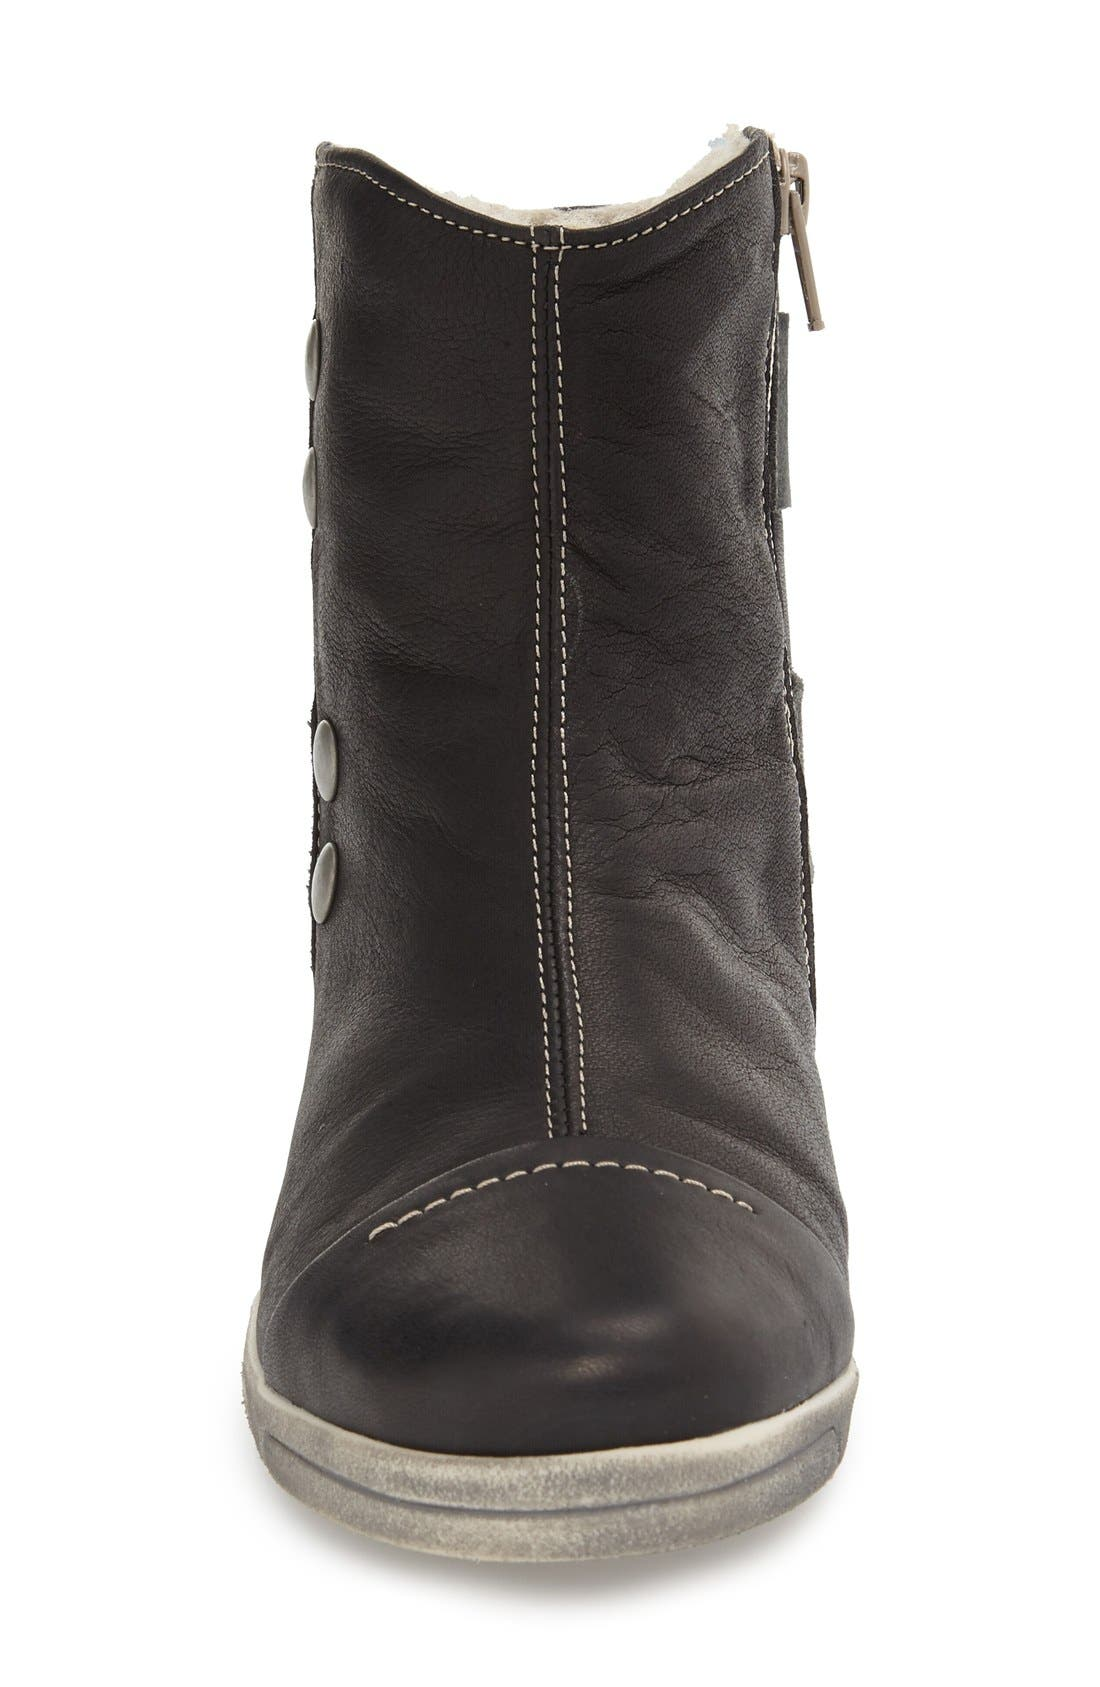 Aline Fantasy Shearling Lined Bootie,                             Alternate thumbnail 3, color,                             BLACK LEATHER